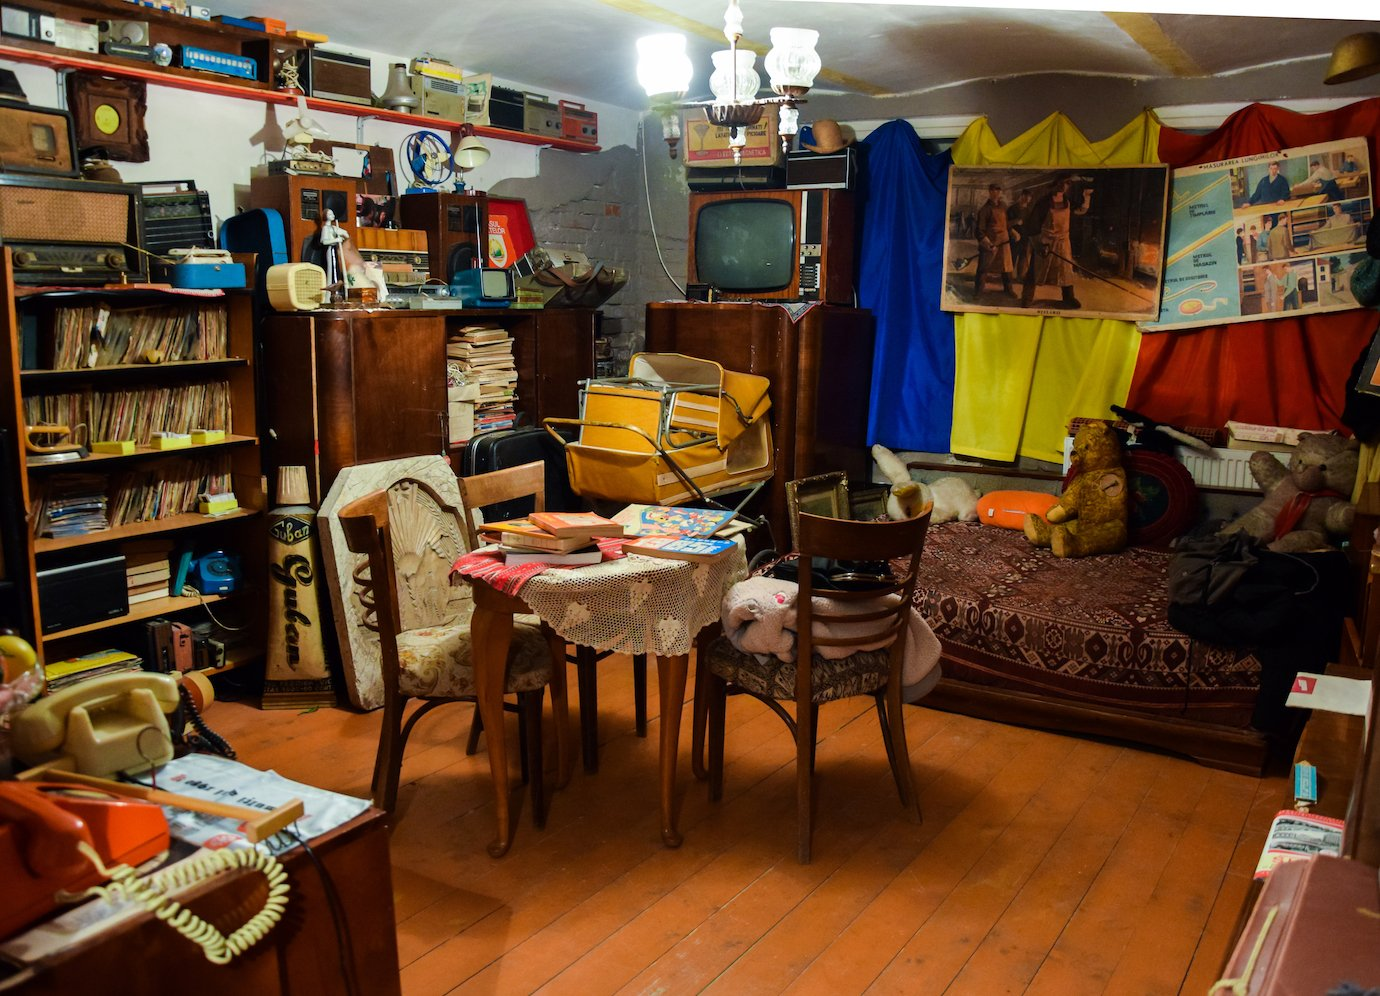 Visit an eccentric underground museum in Timişoara modelled on a typical household in socialist Romania | The Escapist